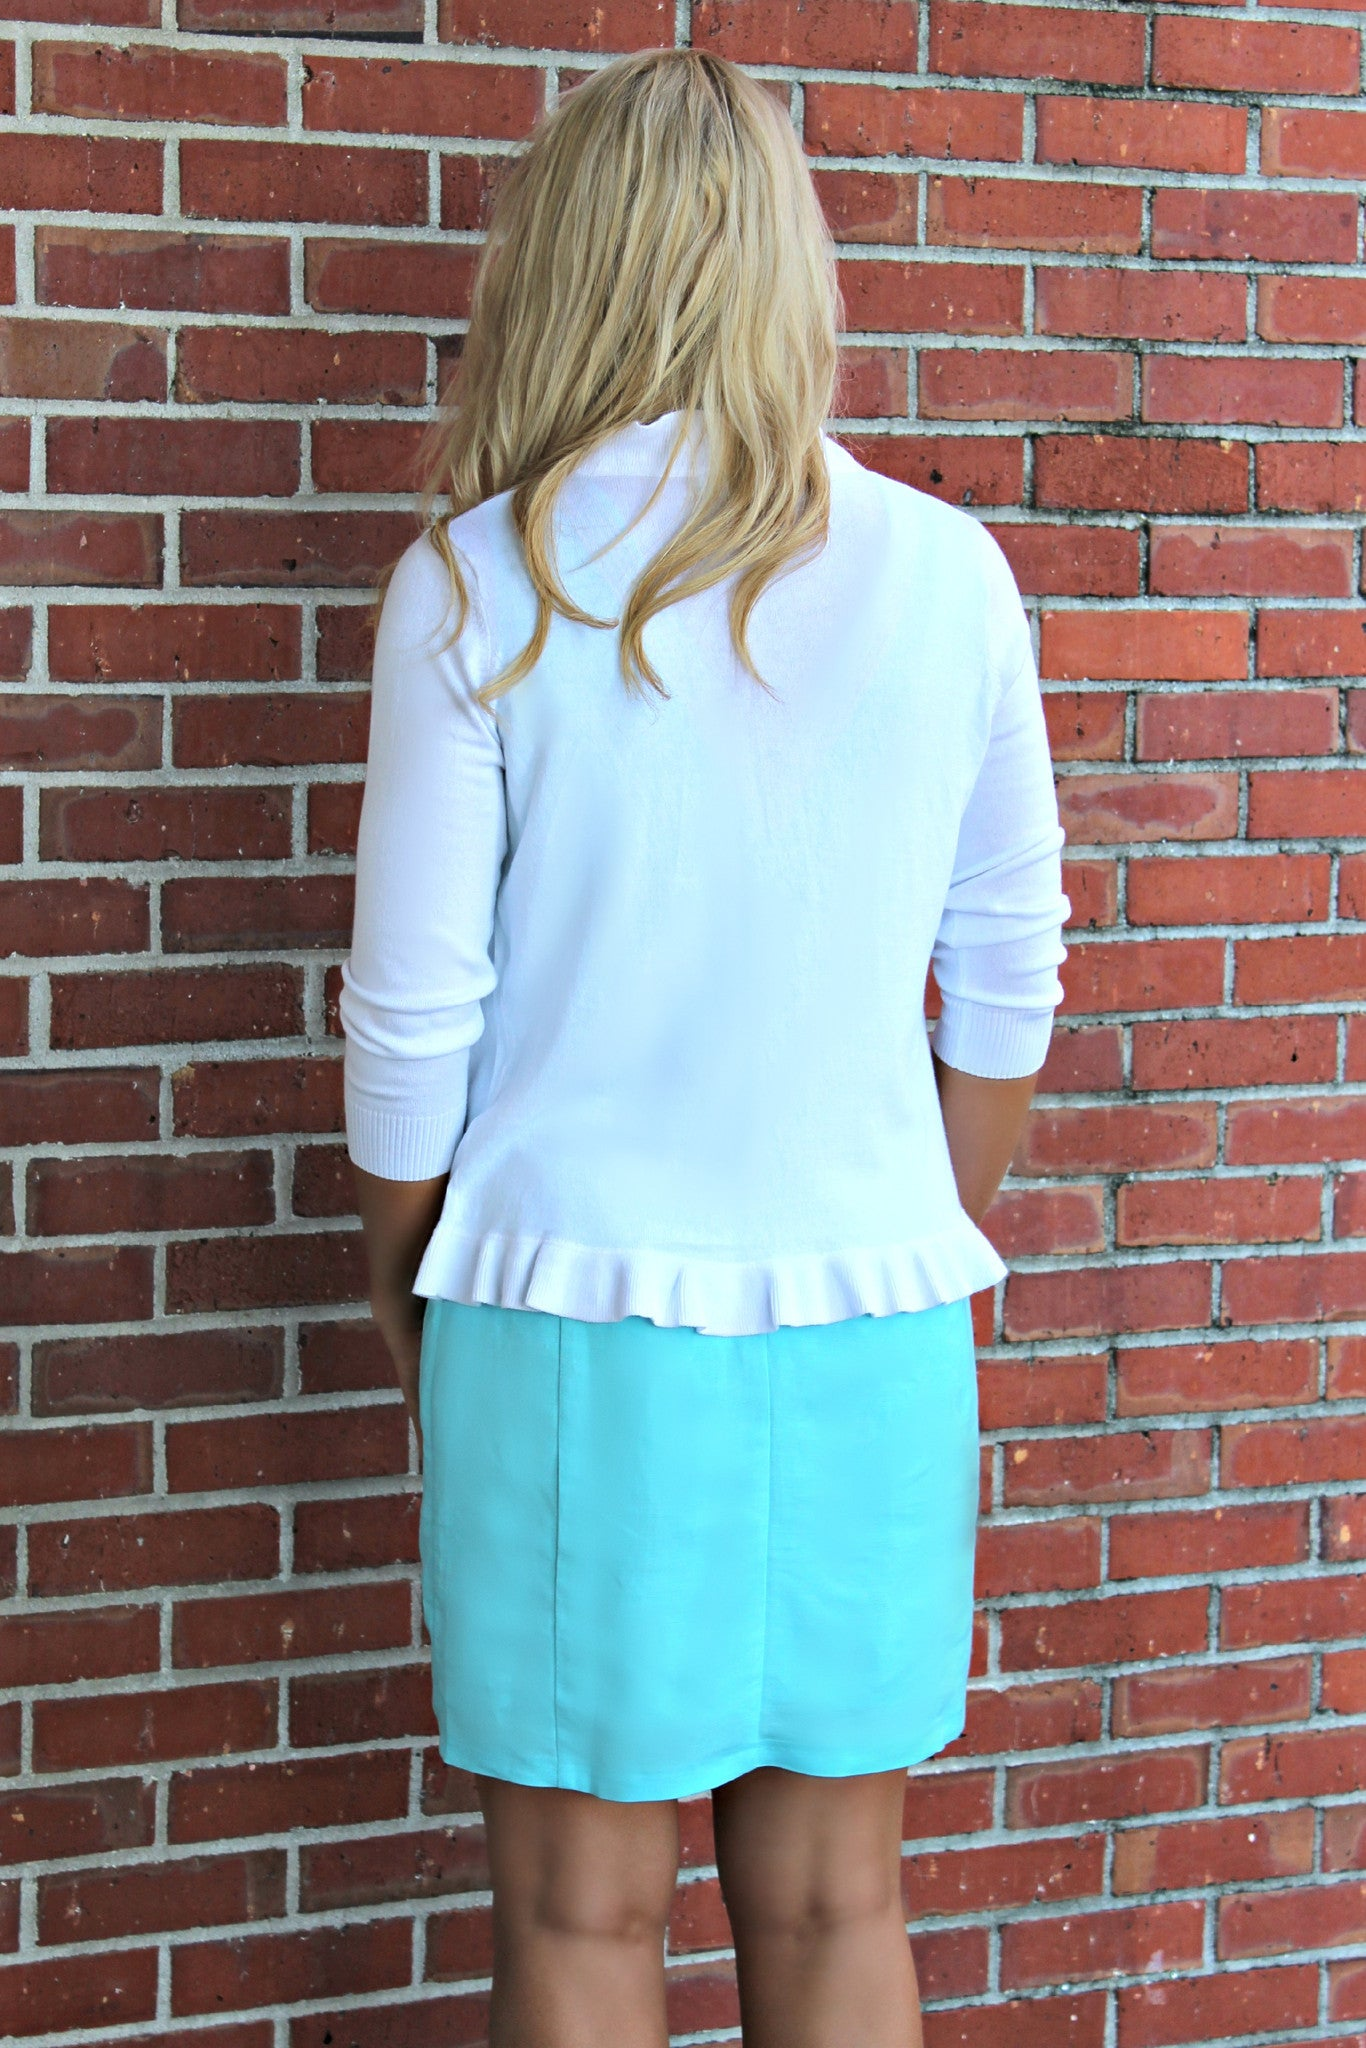 Jade: Kandy Cardigan, White